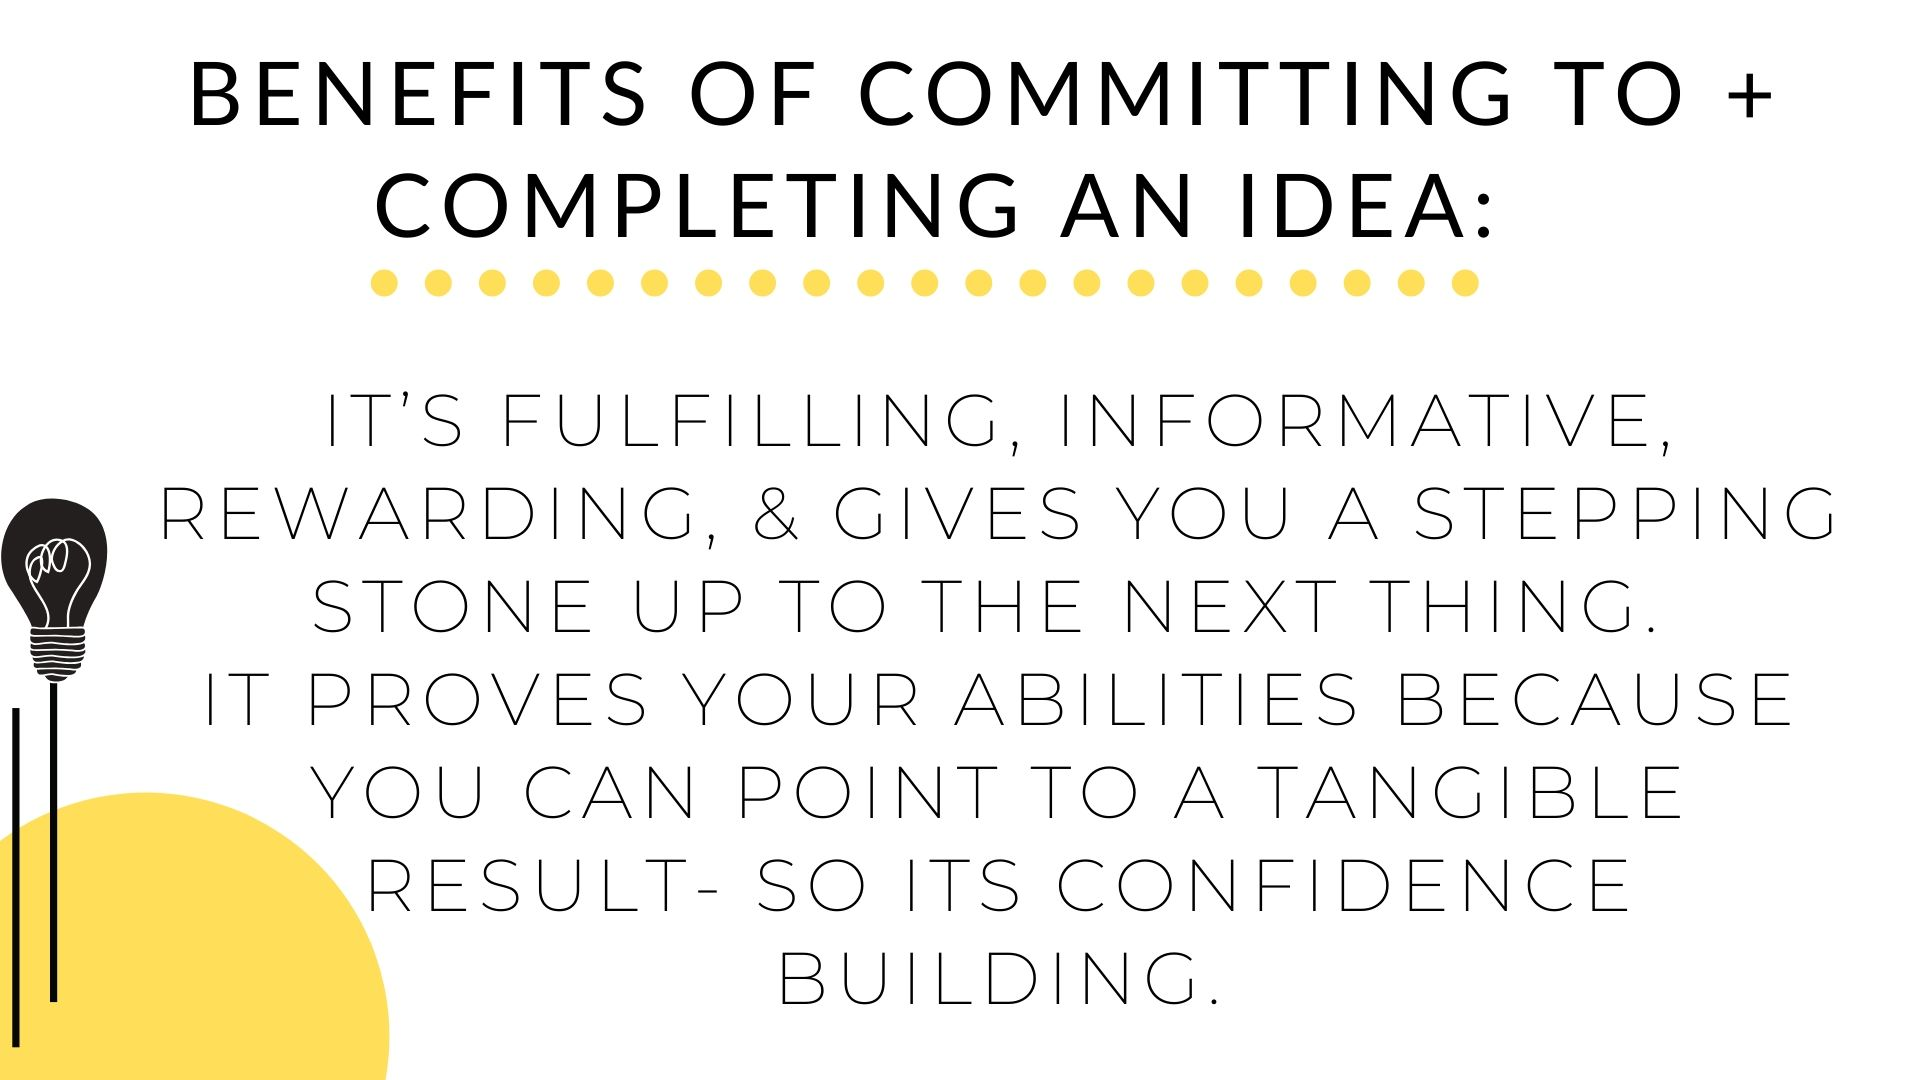 benefits of committing to an idea